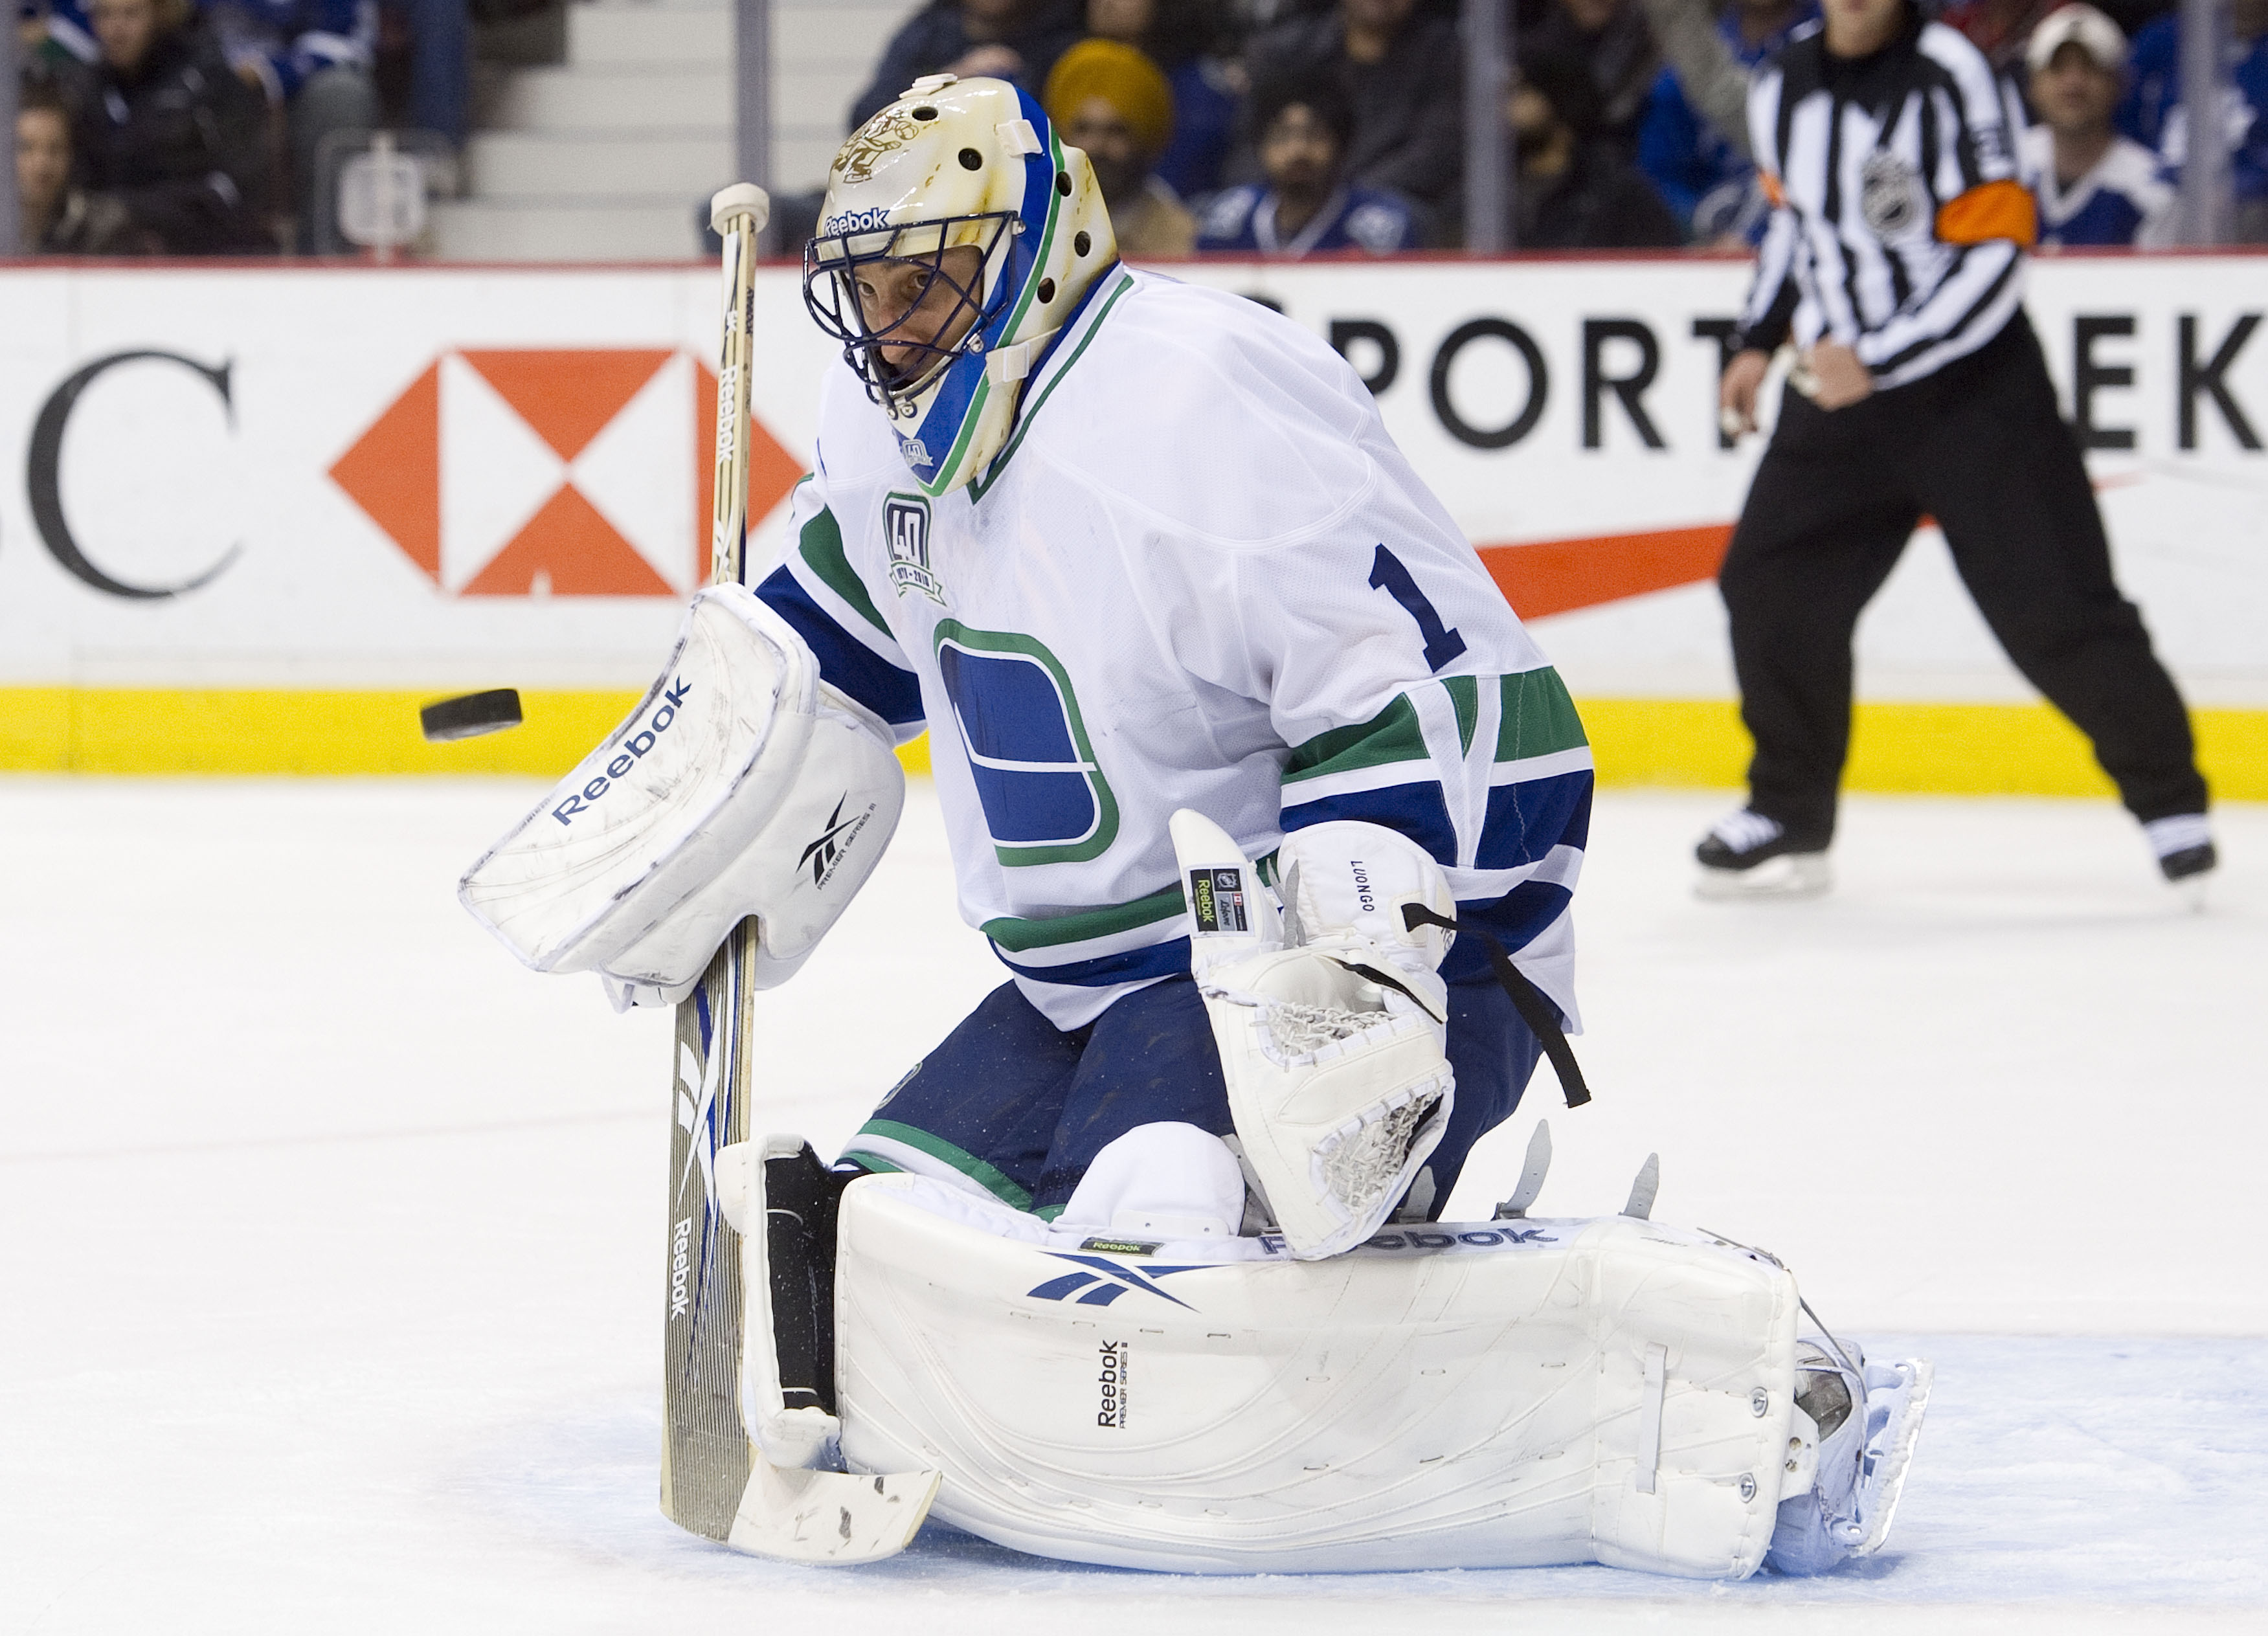 VANCOUVER, CANADA - DECEMBER 18: Goalie Roberto Luongo #1 of the Vancouver Canucks keeps an eye on the airborne puck after making a save against the Toronto Maple Leafs during the first period in NHL action on December 18, 2010 at Rogers Arena in Vancouve